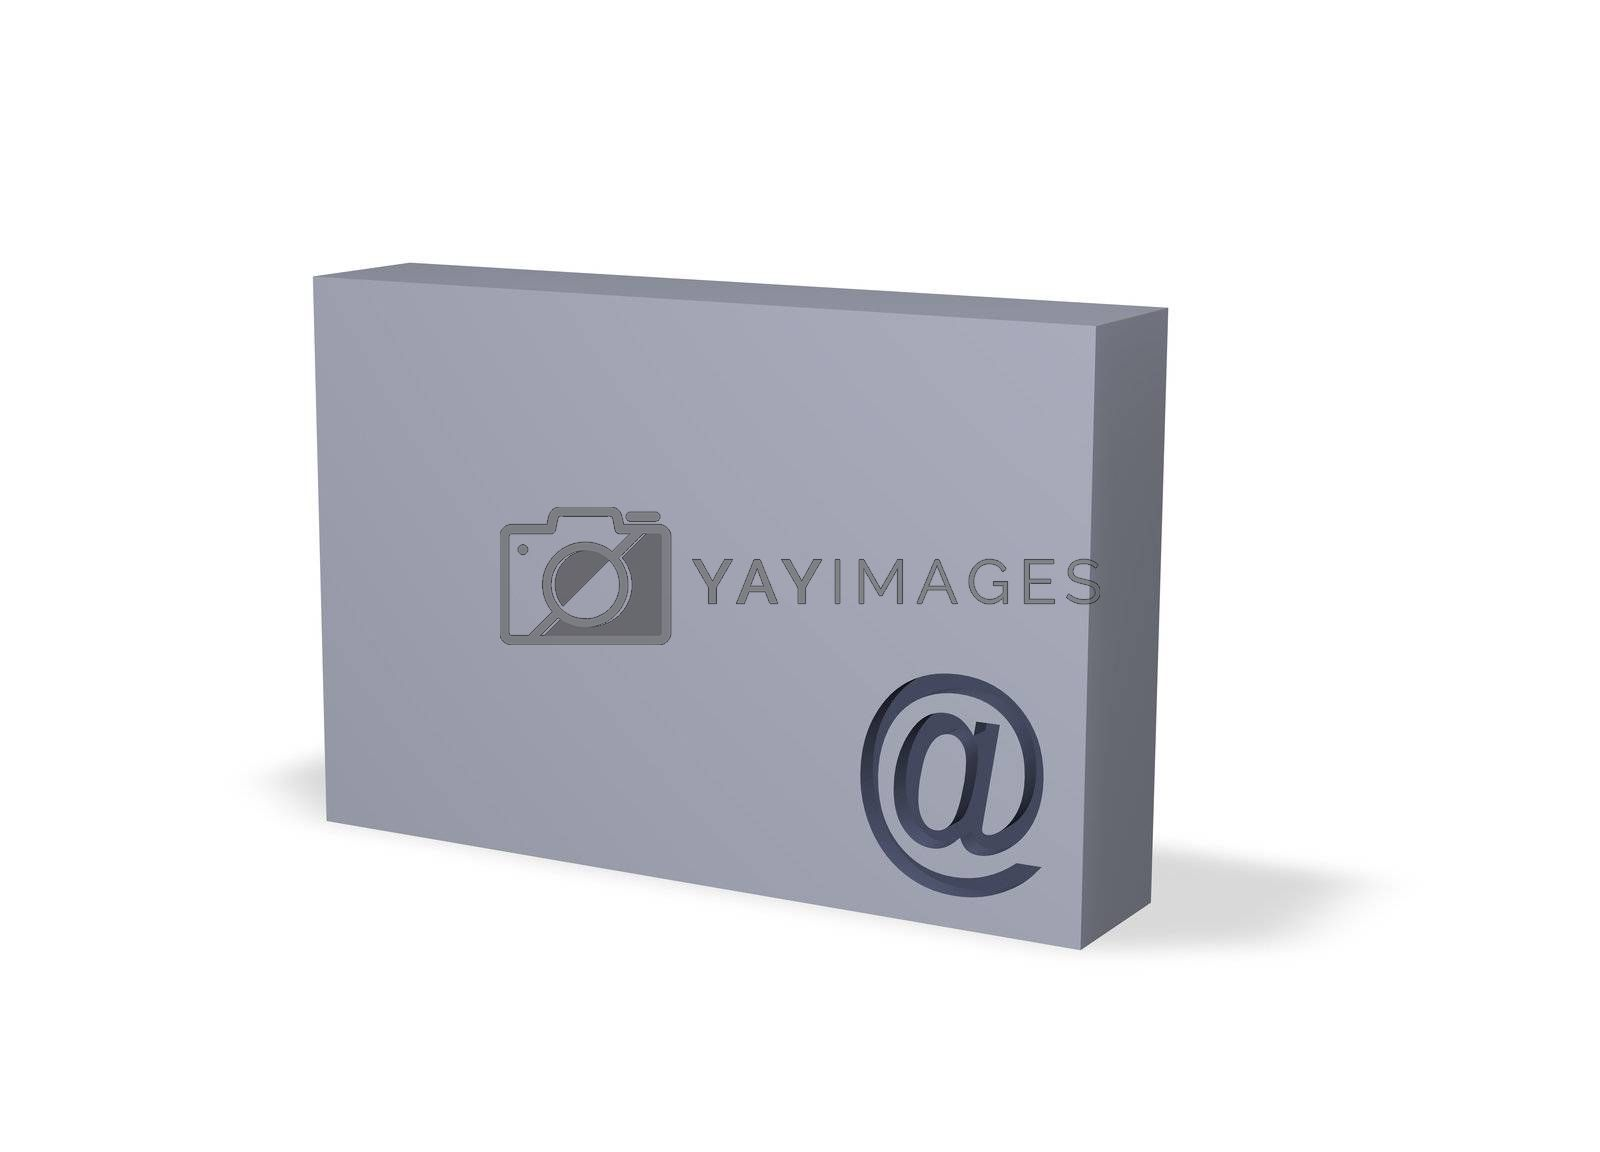 email alias on a box - 3d illustration